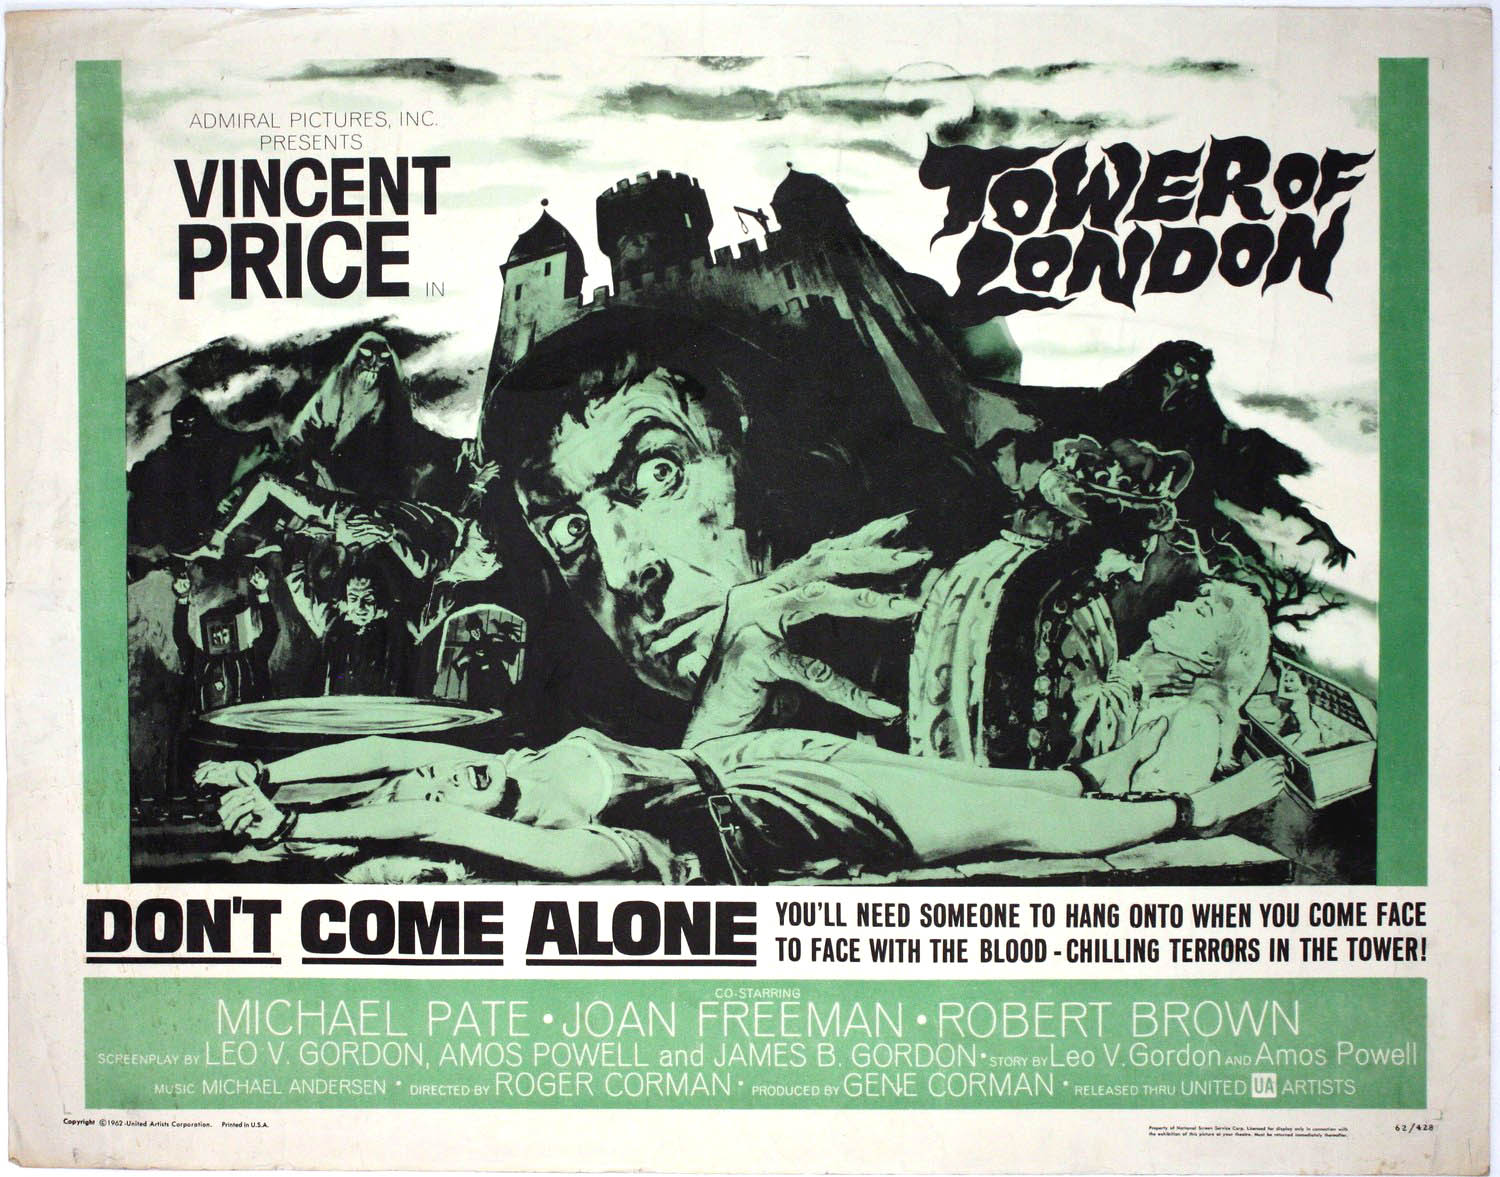 Tower of London Film Poster